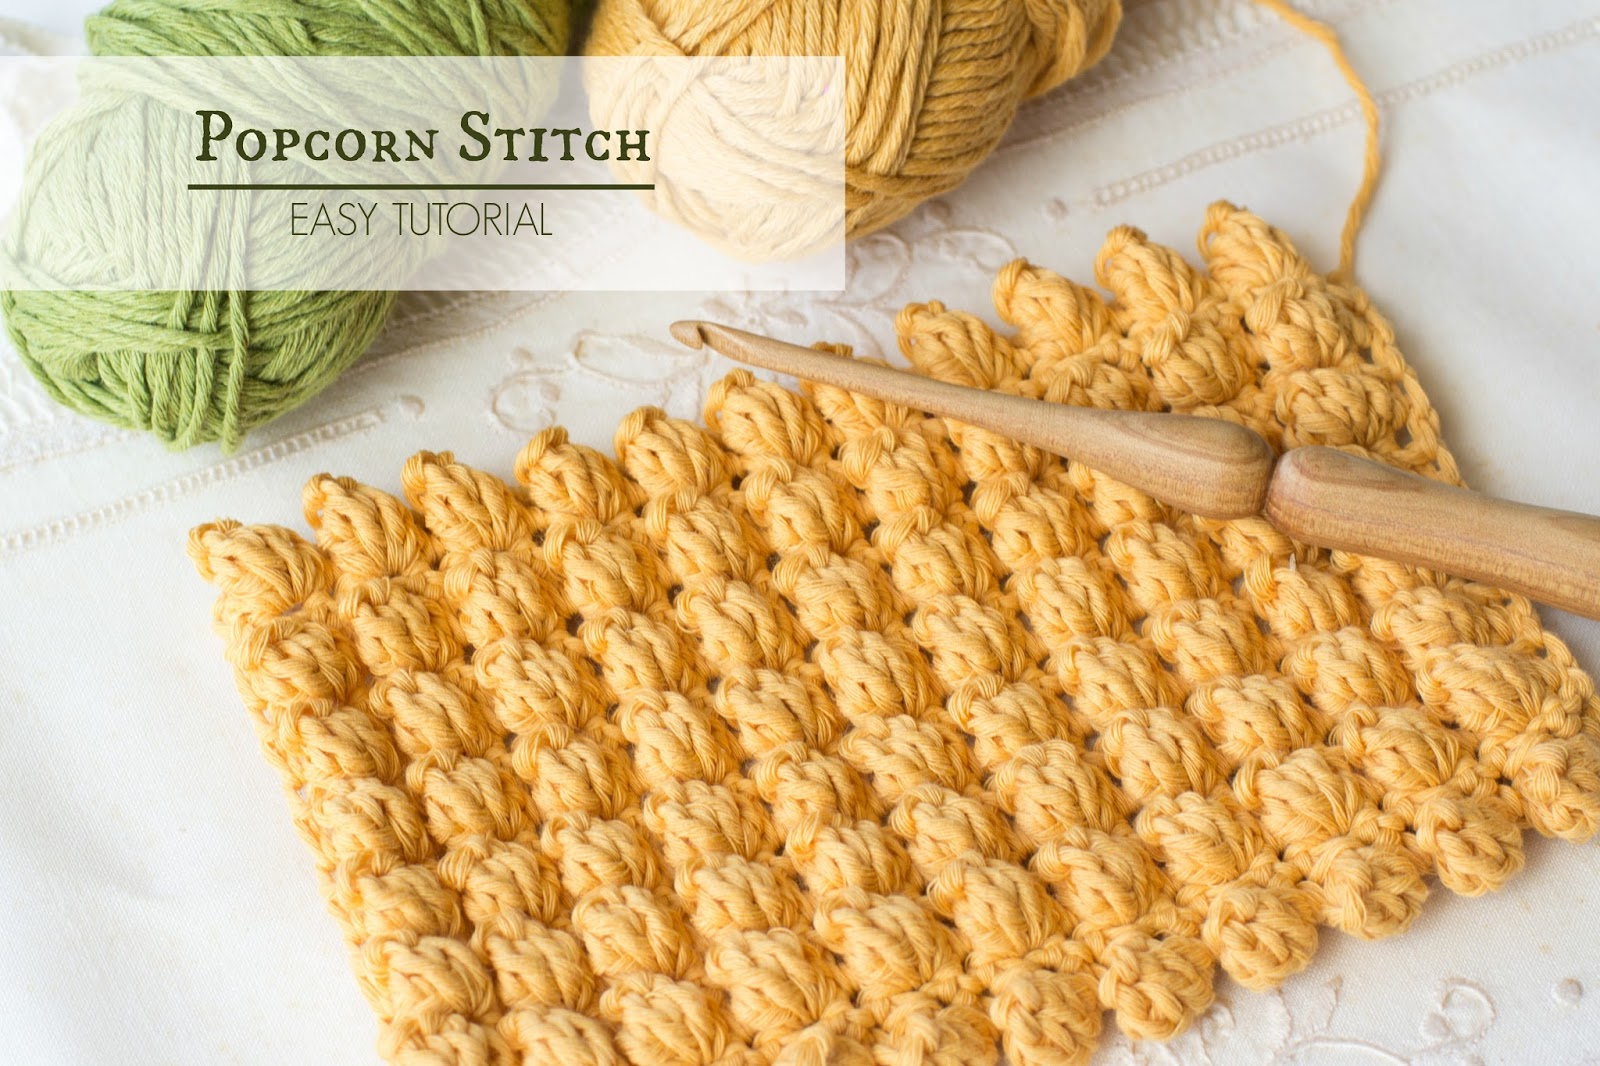 How To: Crochet The Popcorn Stitch  Easy Tutorial